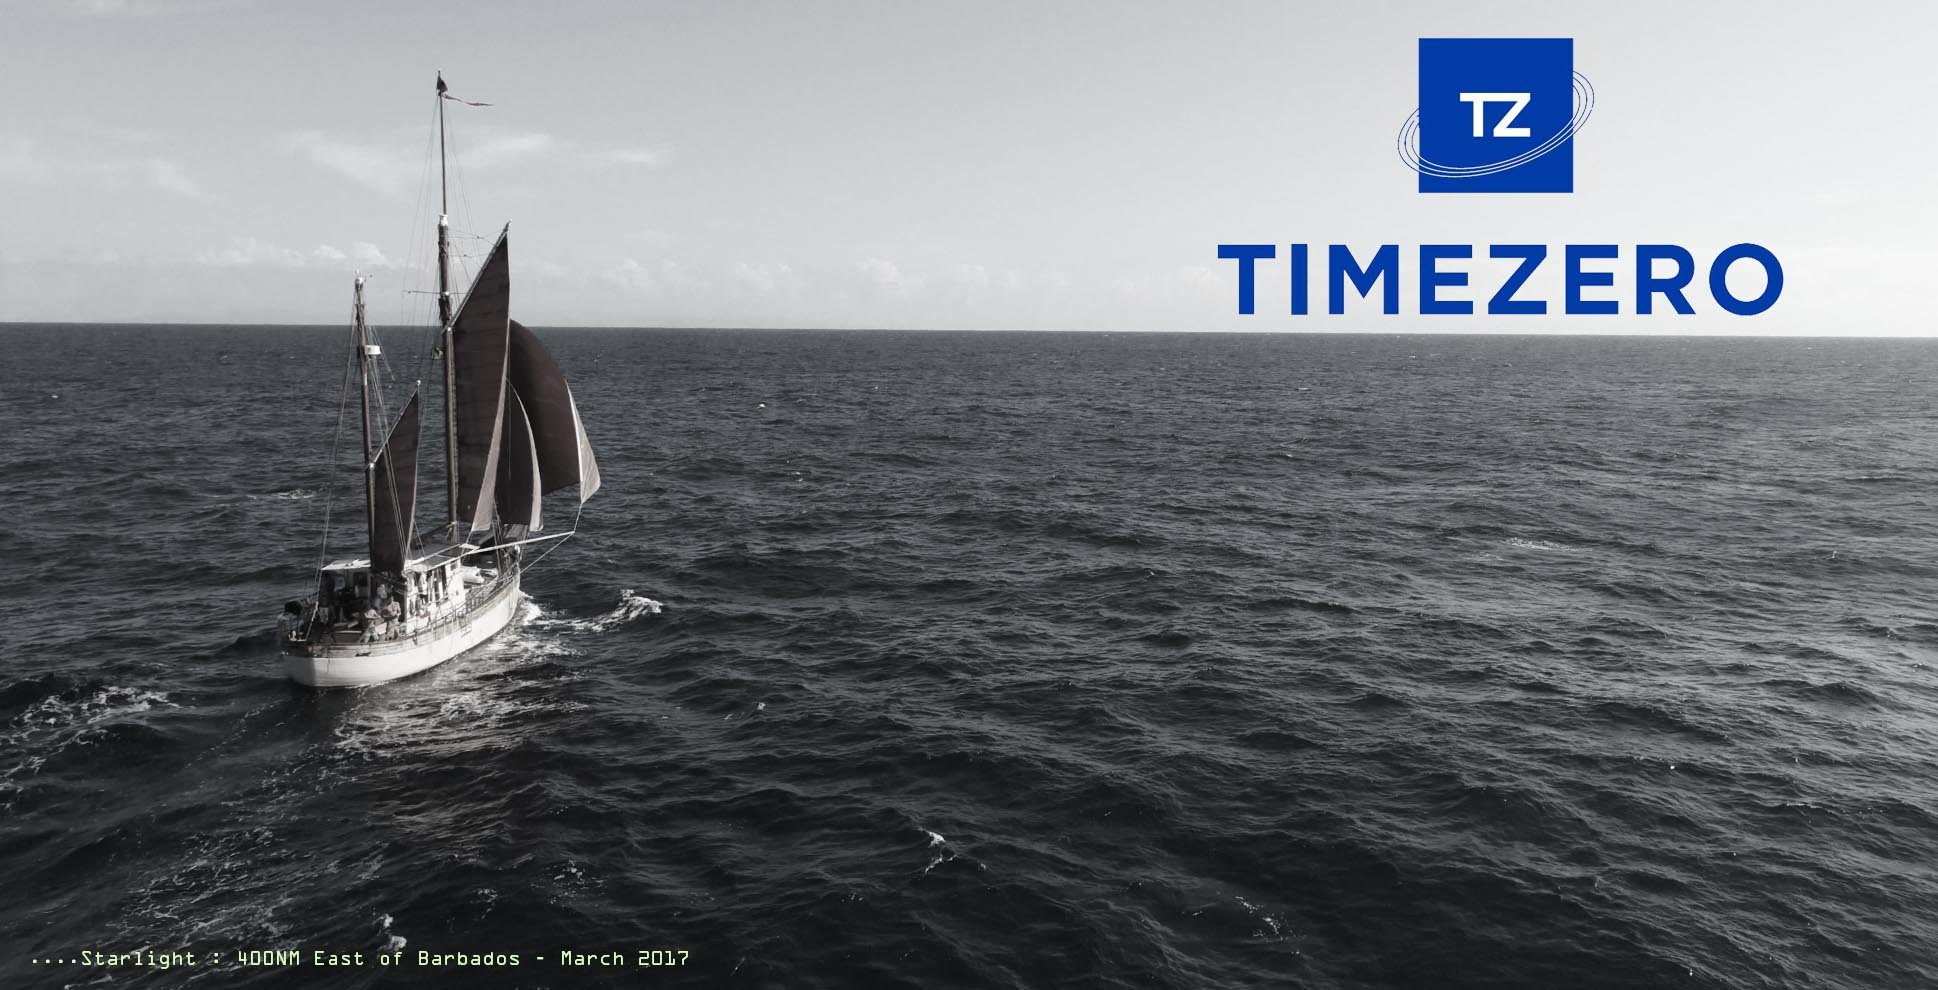 Time Zero has kept us off the rocks and on track since day one !    Clic the pic to check out their Awesome navigation software